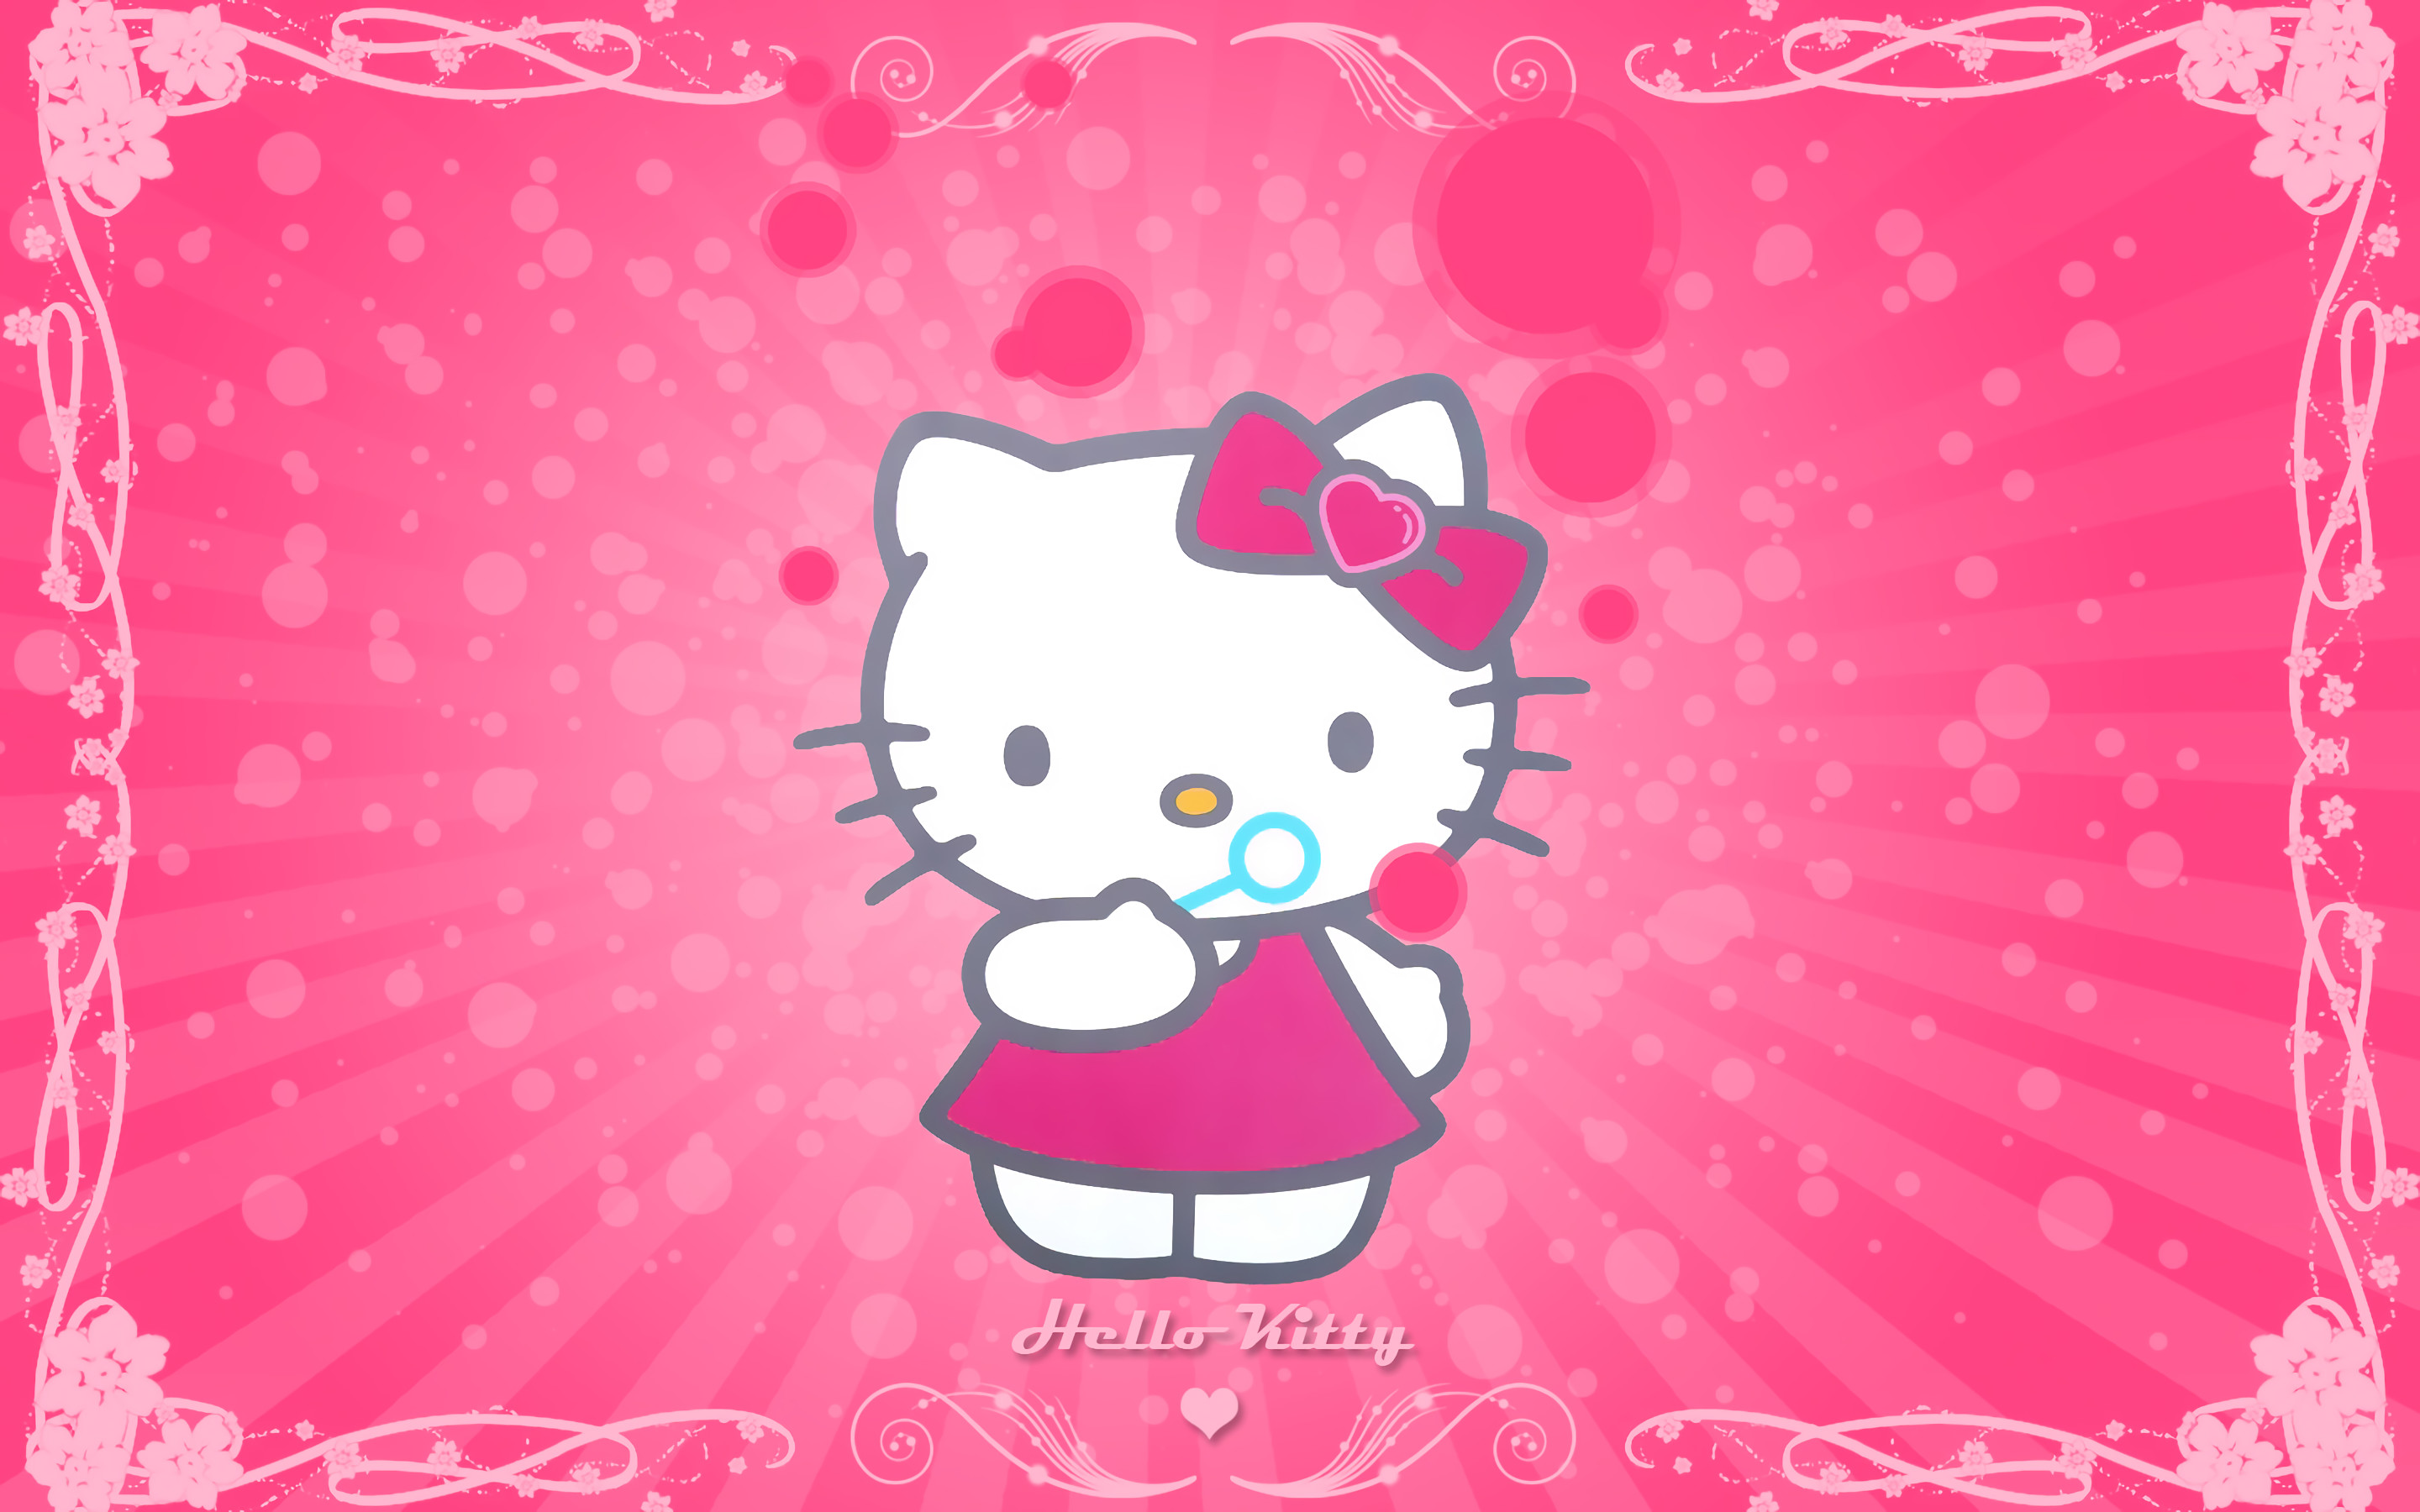 Top Wallpaper Hello Kitty Glitter - 477224-vertical-hello-kitty-screensavers-and-wallpapers-2880x1800-large-resolution  2018_26964.jpg